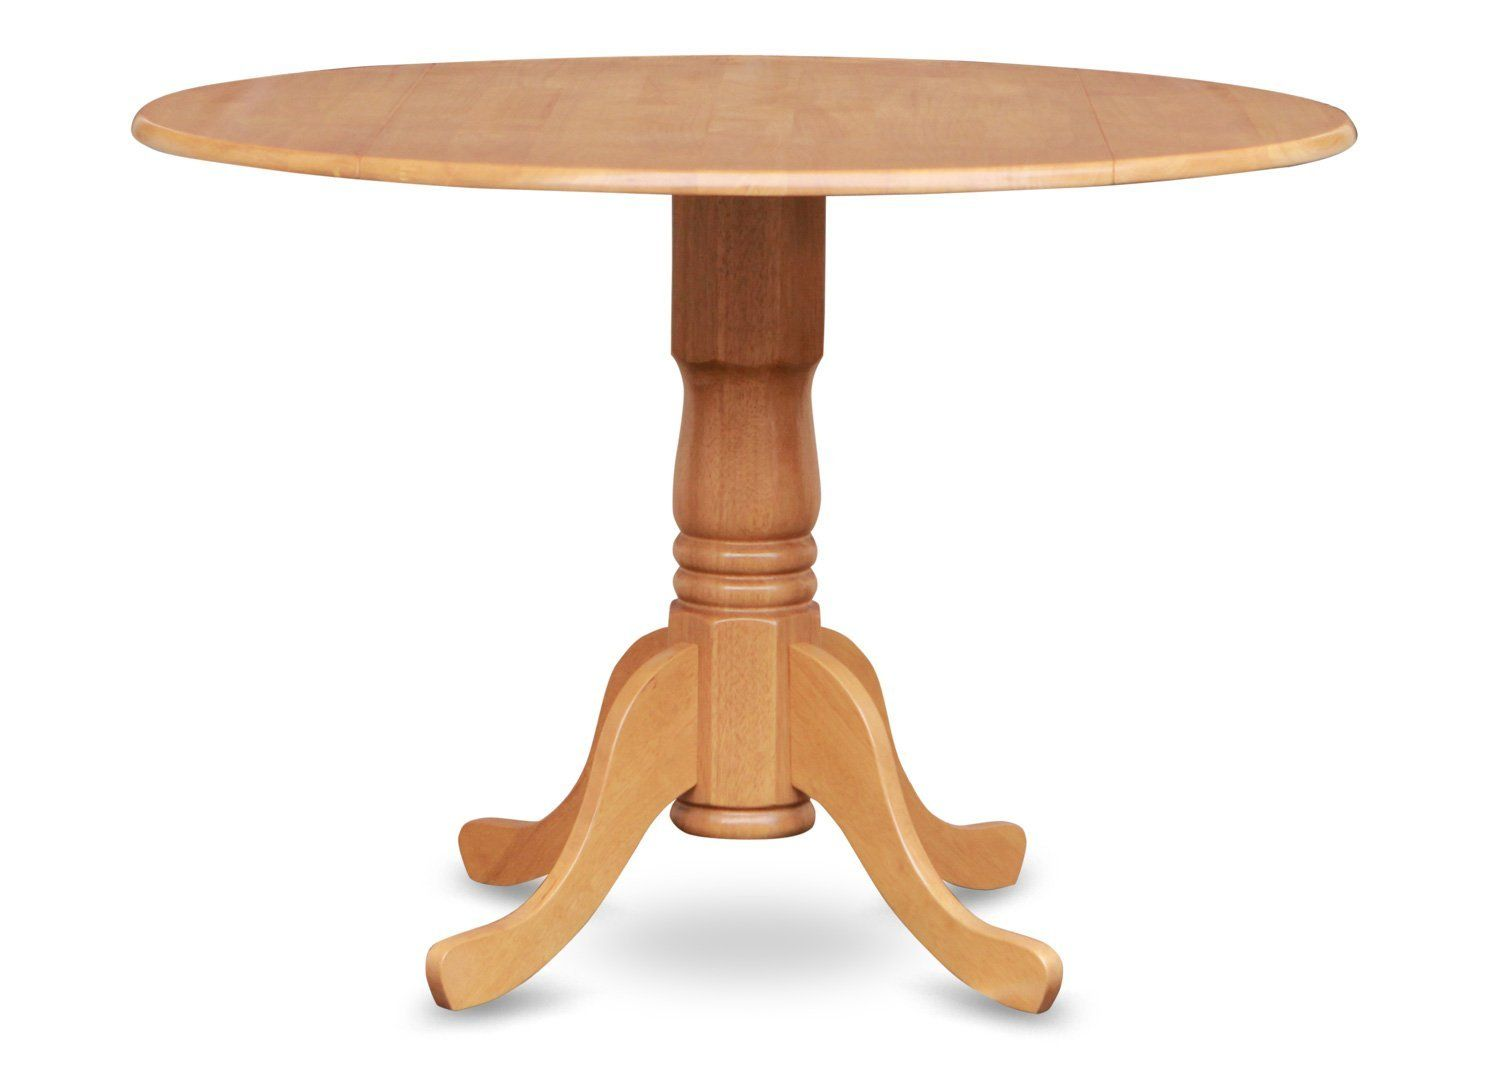 202 East West Furniture Dlt Oak Tp Round Table With